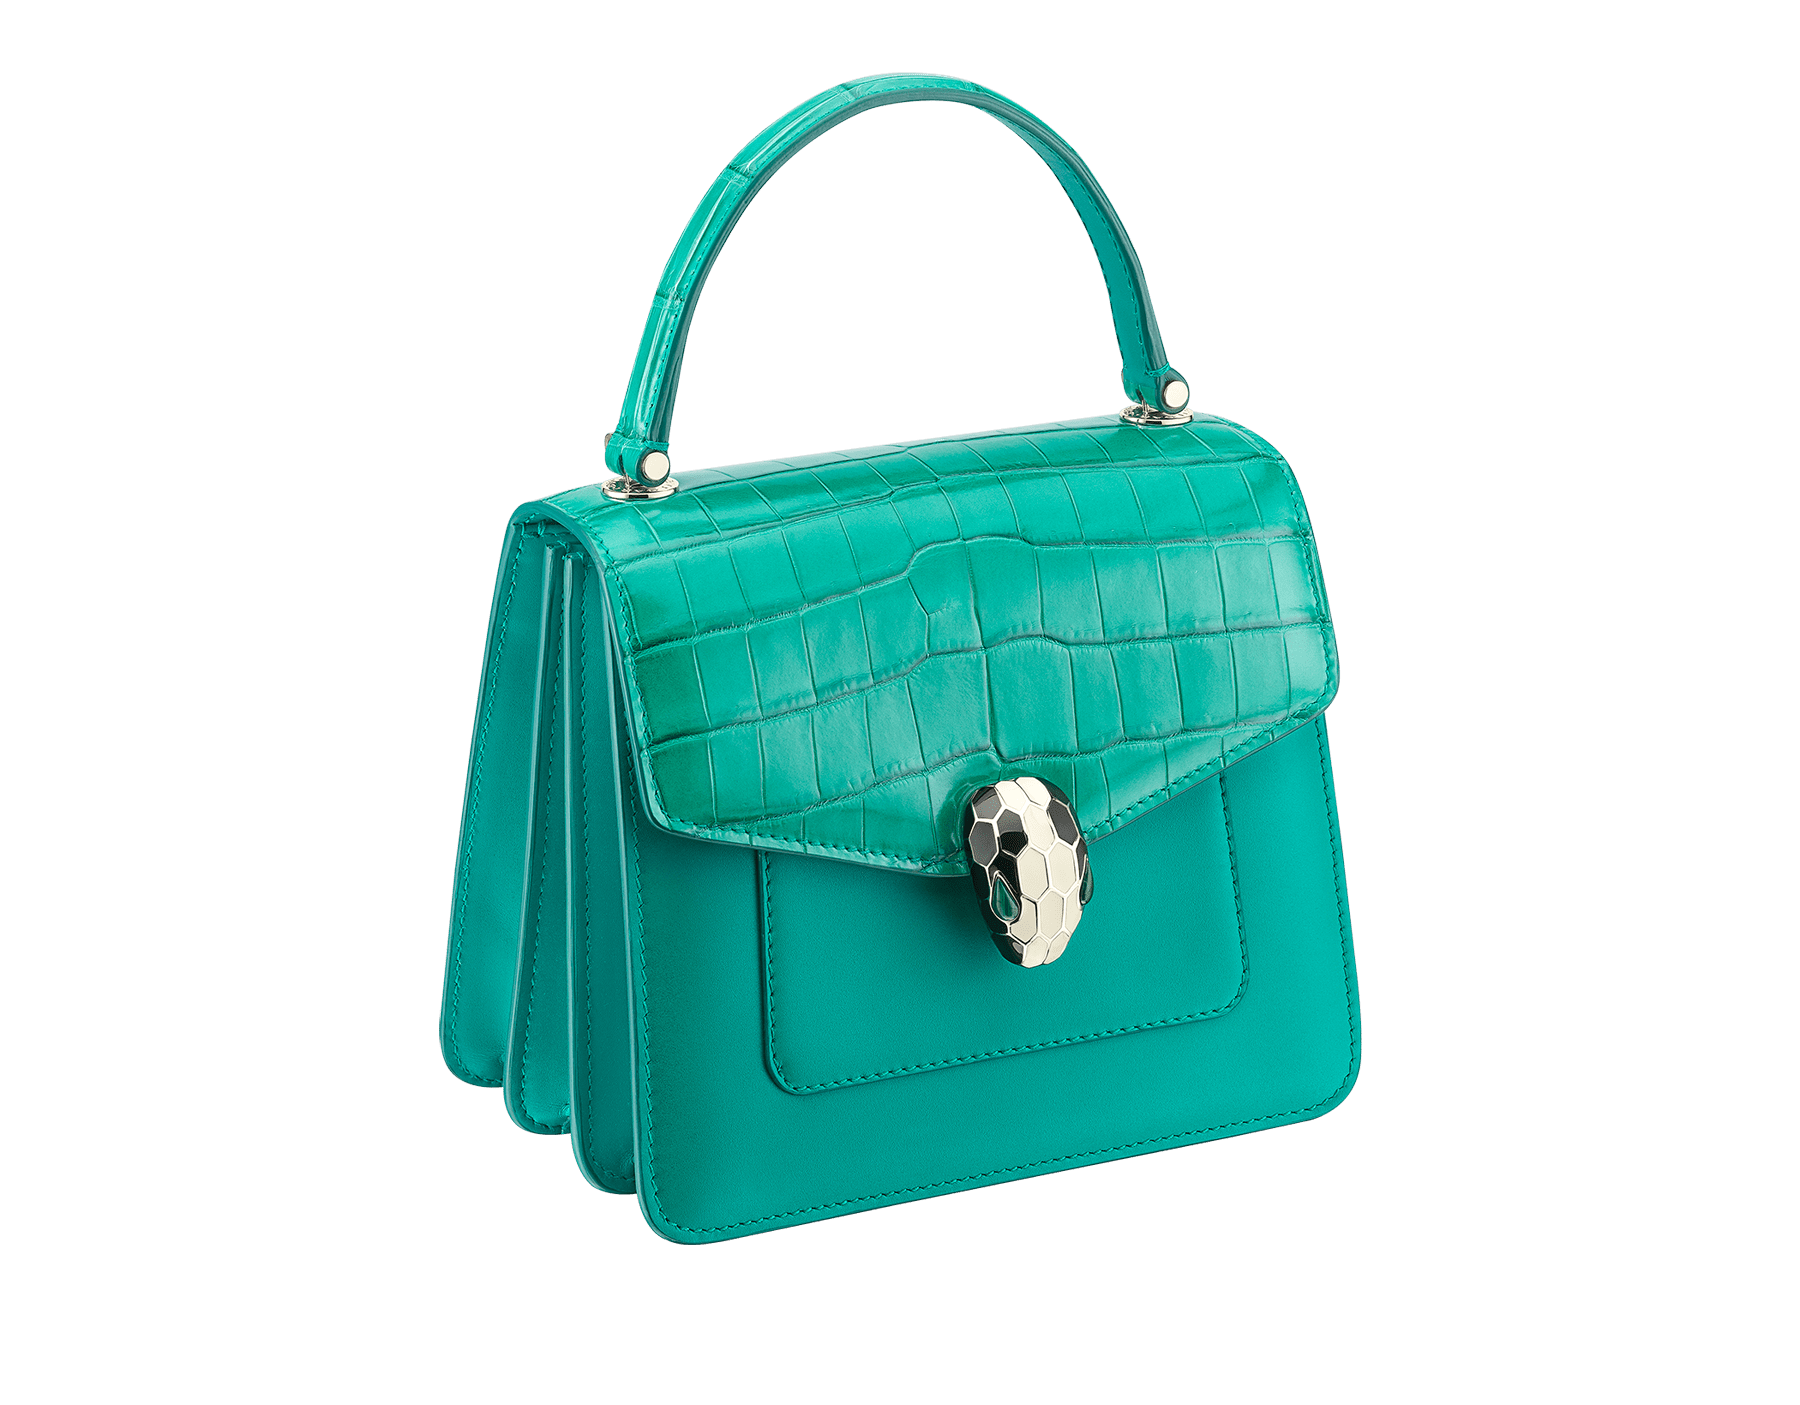 Serpenti Forever crossbody bag in tropical turquoise shiny croco skin and smooth calf leather. Snakehead closure in light gold plated brass decorated with black and white enamel, and green malachite eyes. 288492 image 2